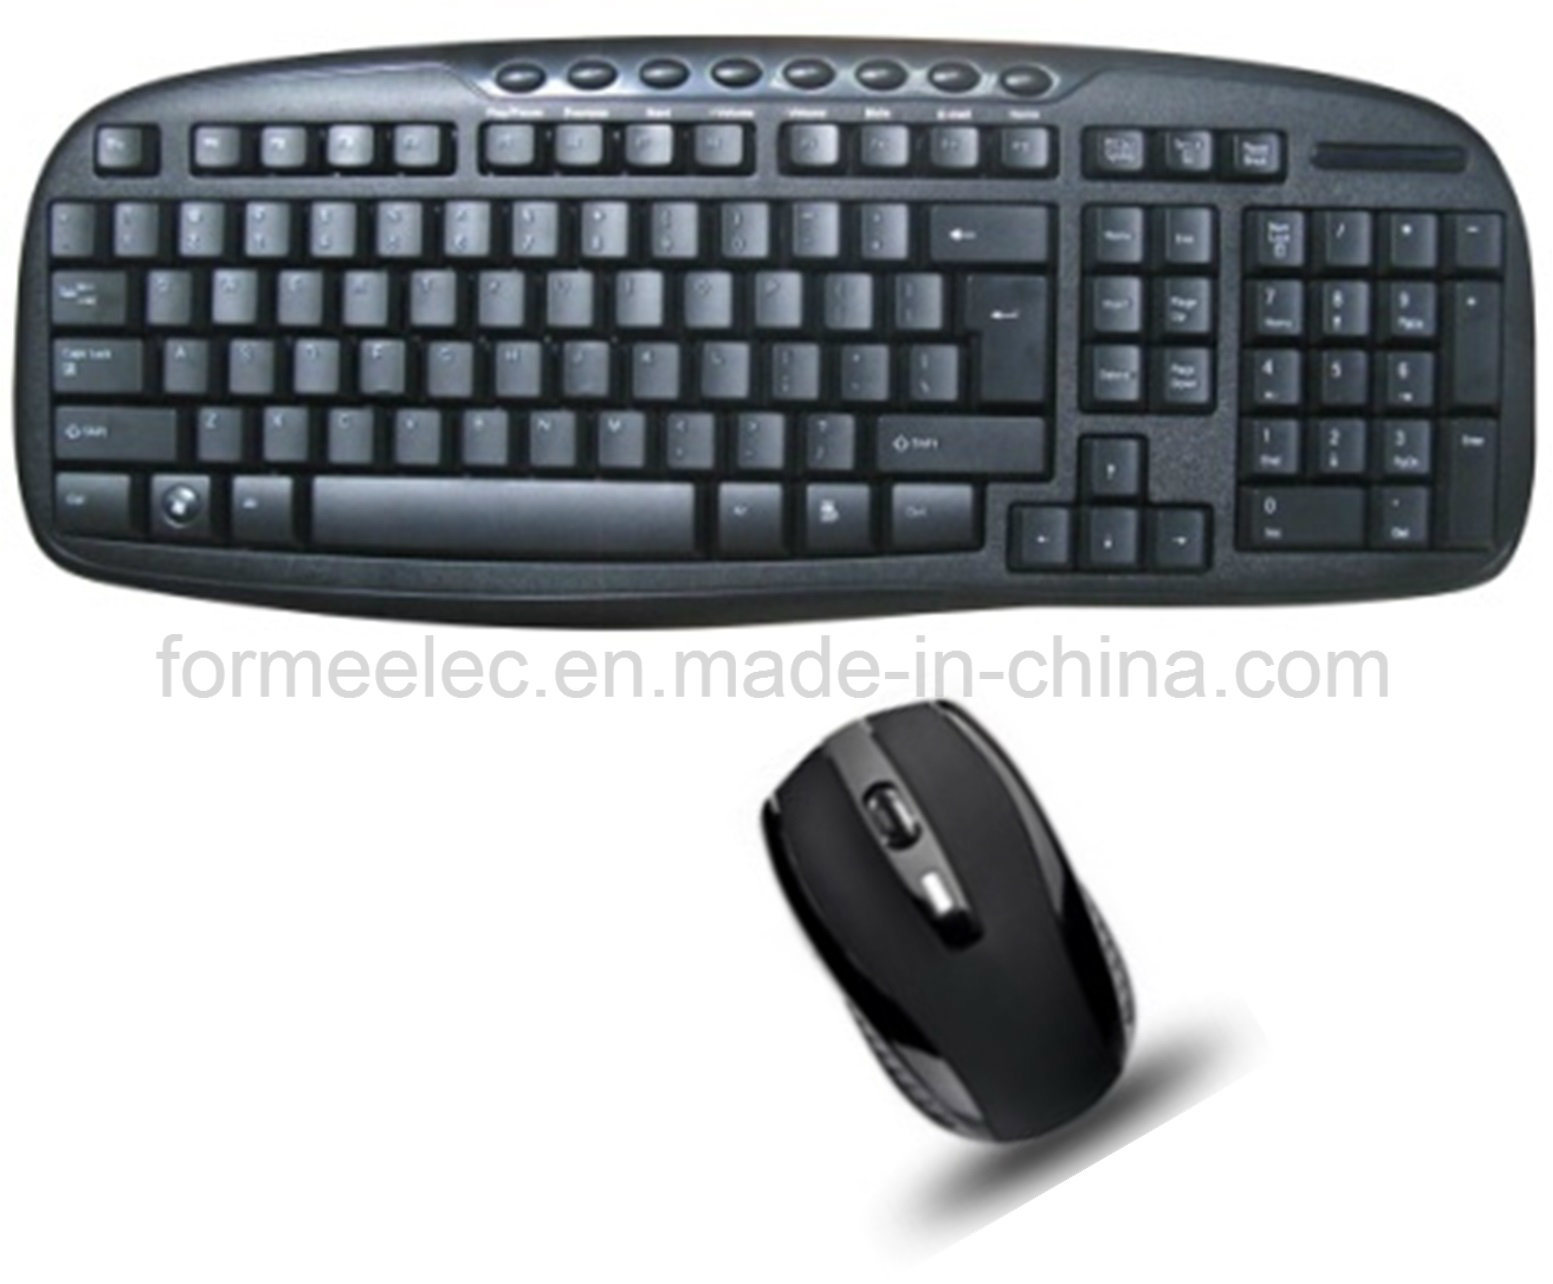 2.4G Multi-Media Wireless Mouse Keyboard Combo